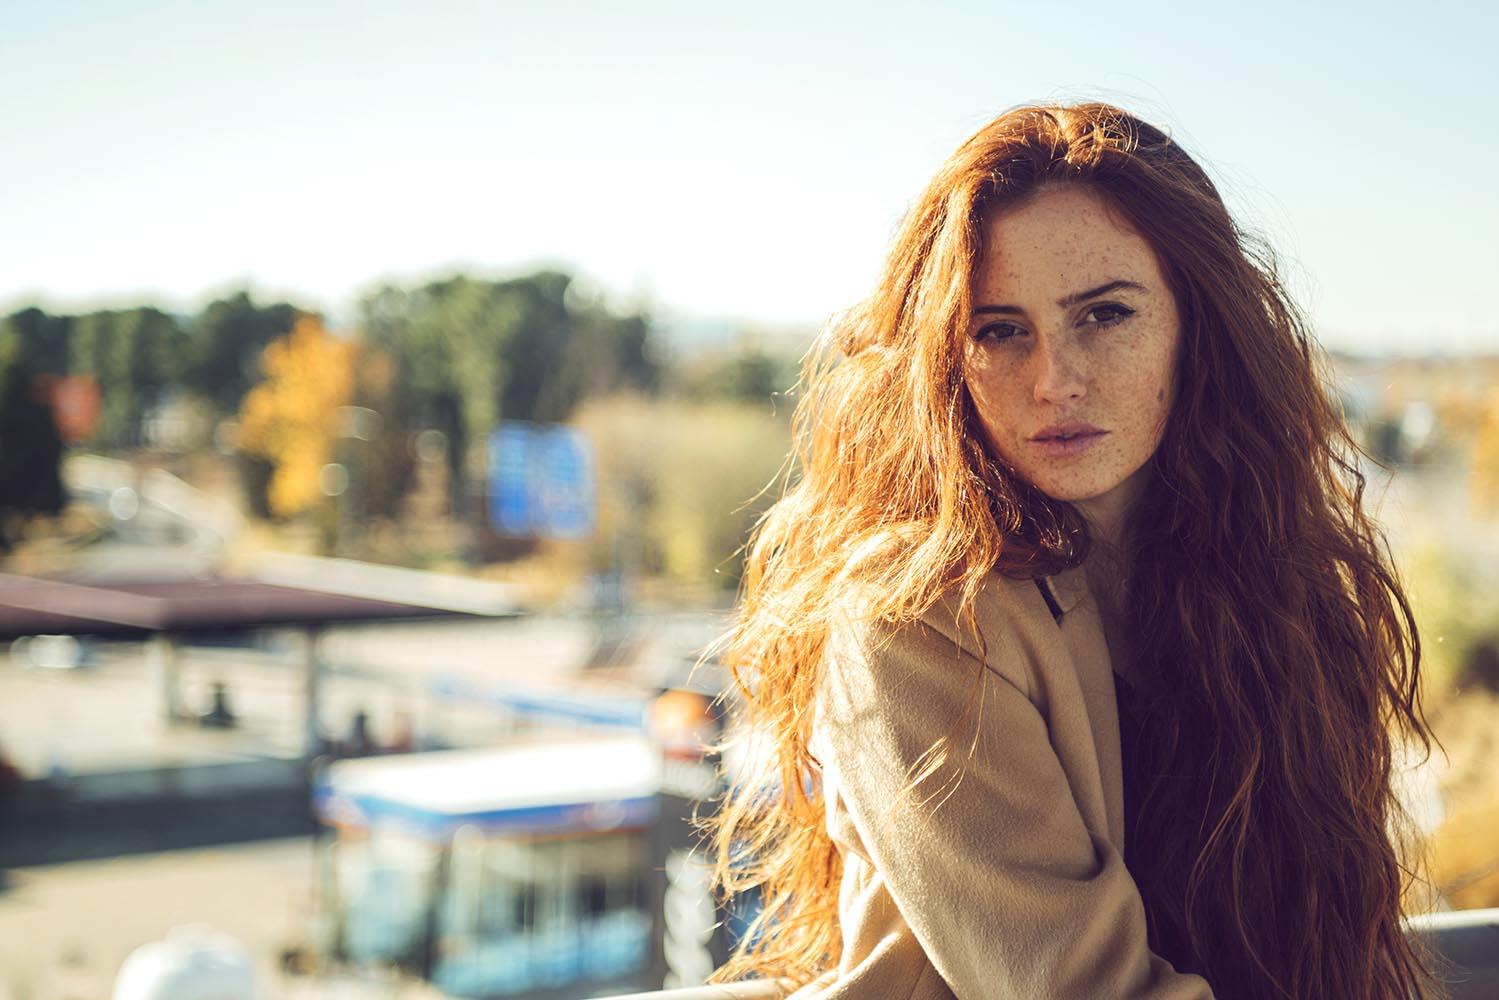 Beautiful redhead woman in sunlight